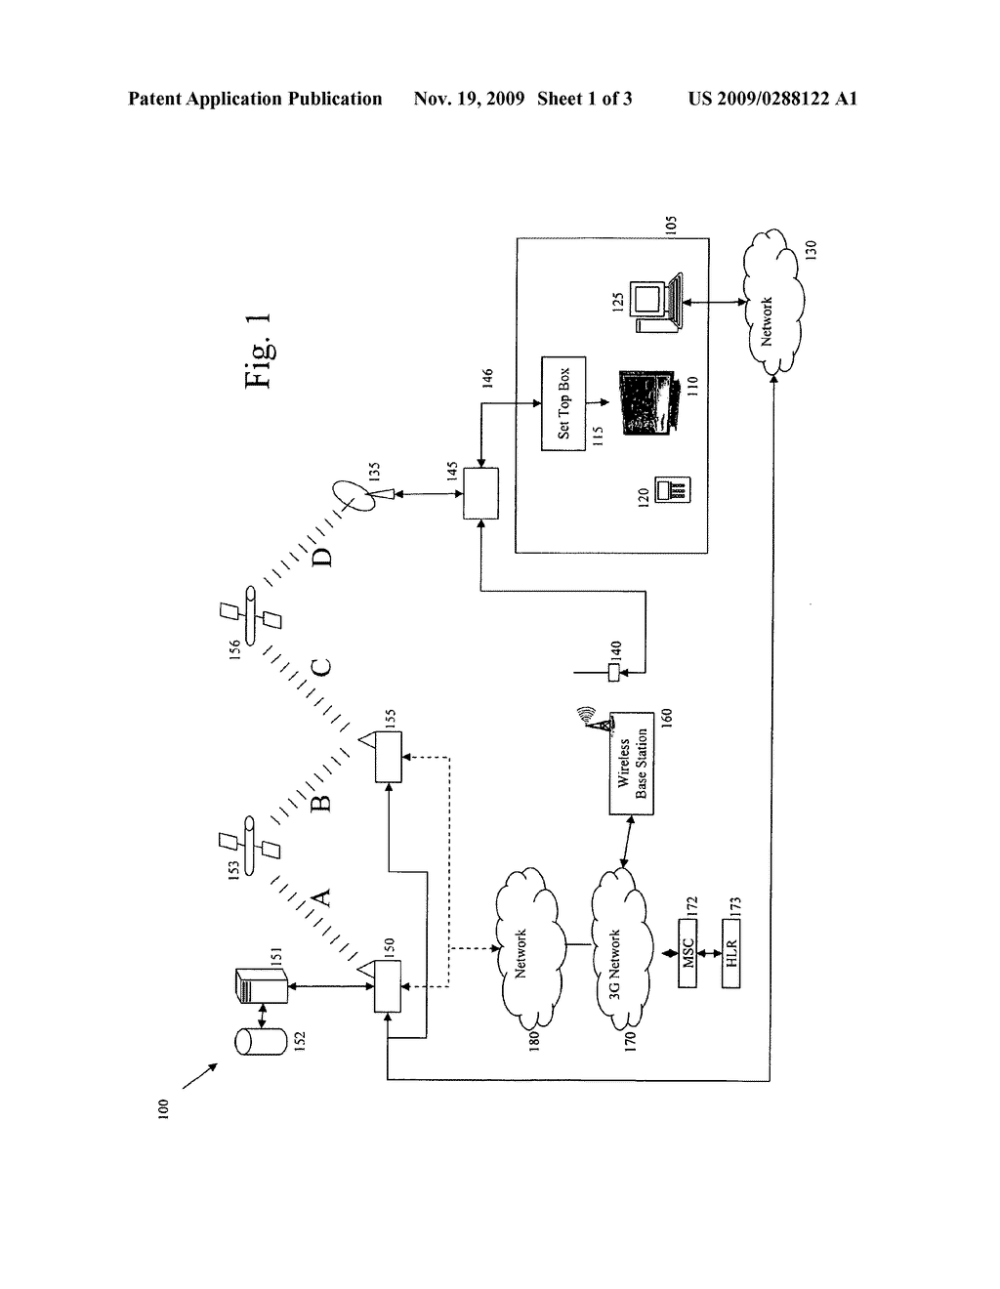 medium resolution of system method and apparatus for an integrated antenna and satellite dish diagram schematic and image 02